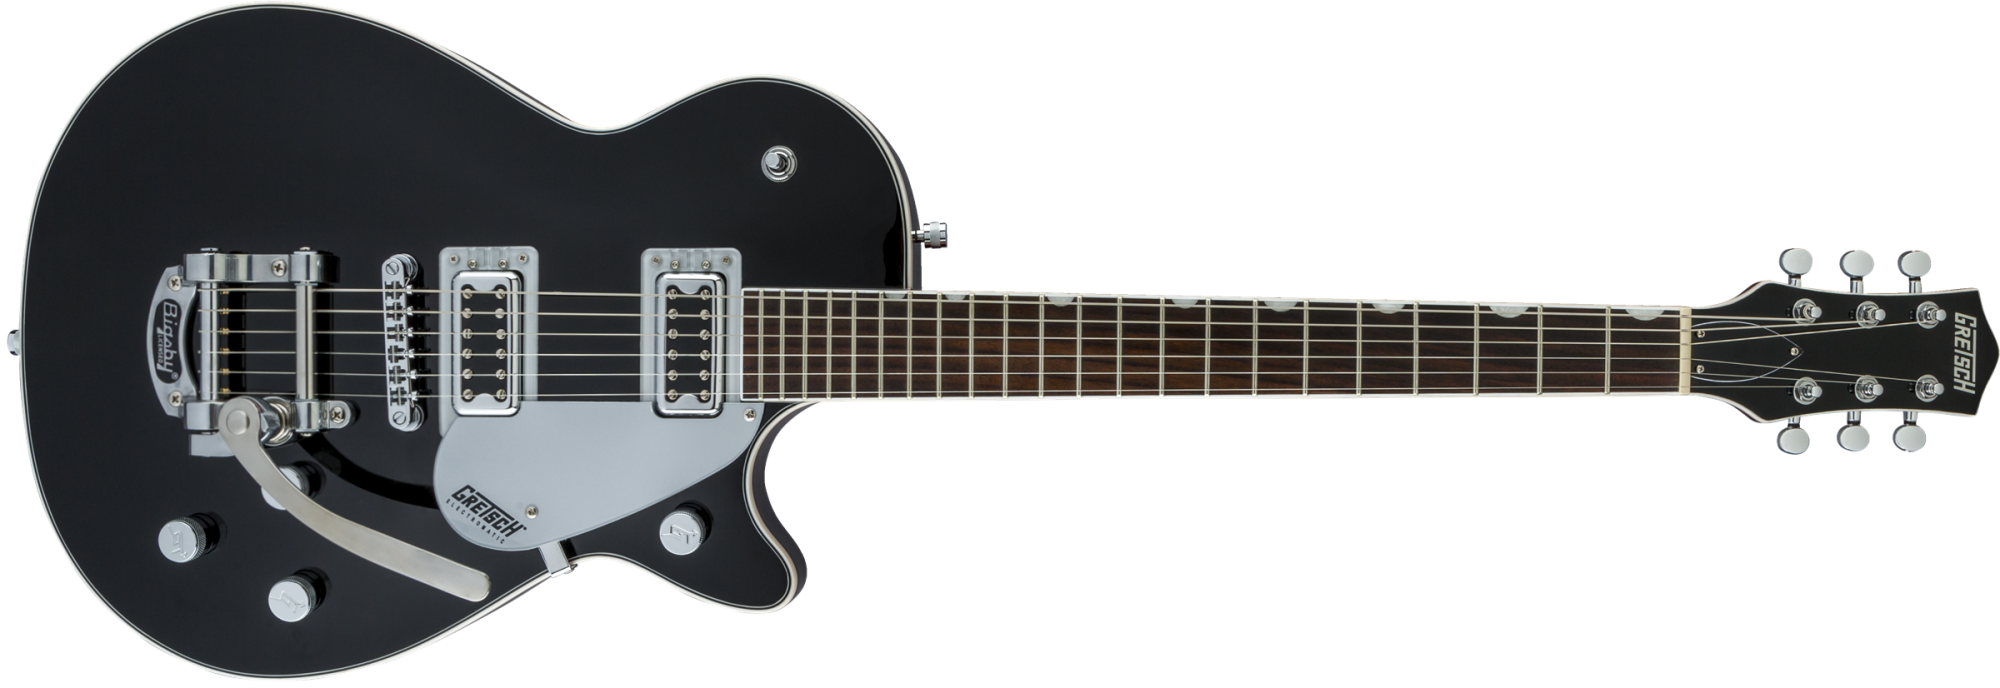 G5230T Electromatic Jet FT w/Bigsby